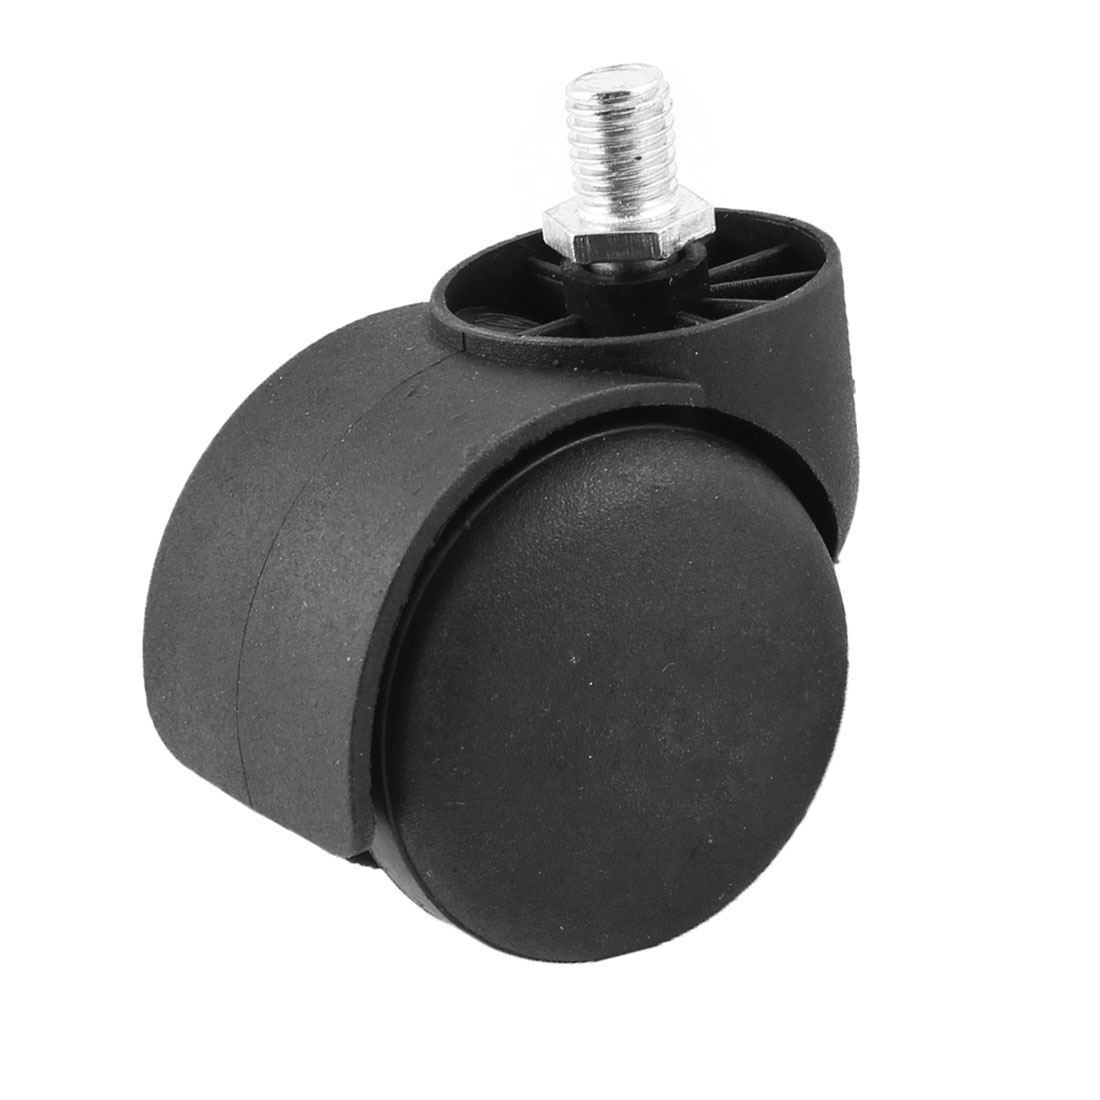 "10mm Thread Diameter 2"" Wheel Rotatable Caster Black for office Chair"